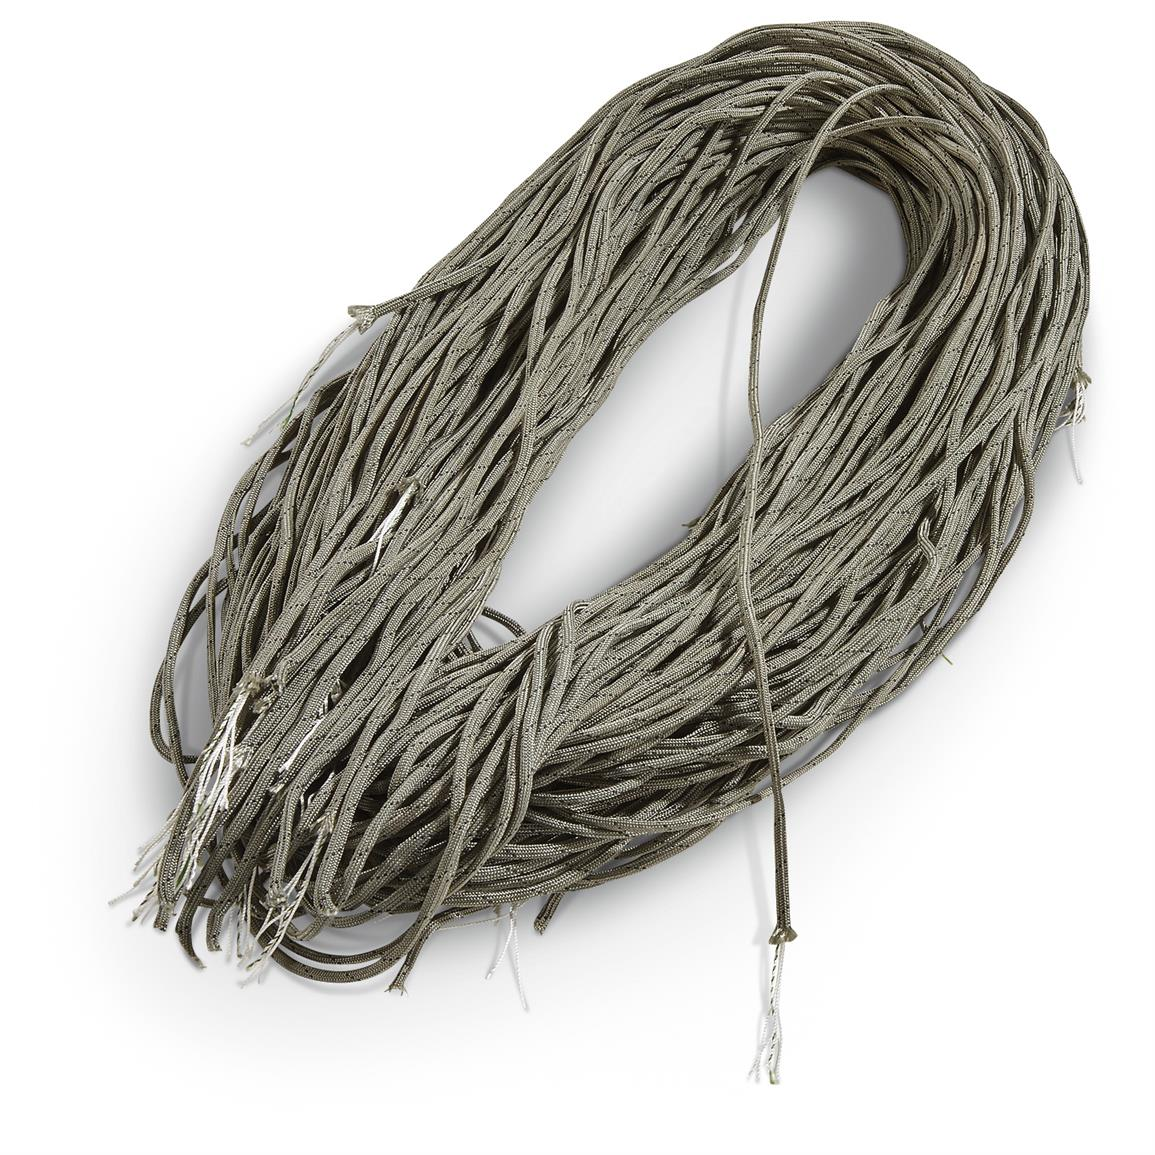 U.S. Military Issue 300' Cargo Cord, New